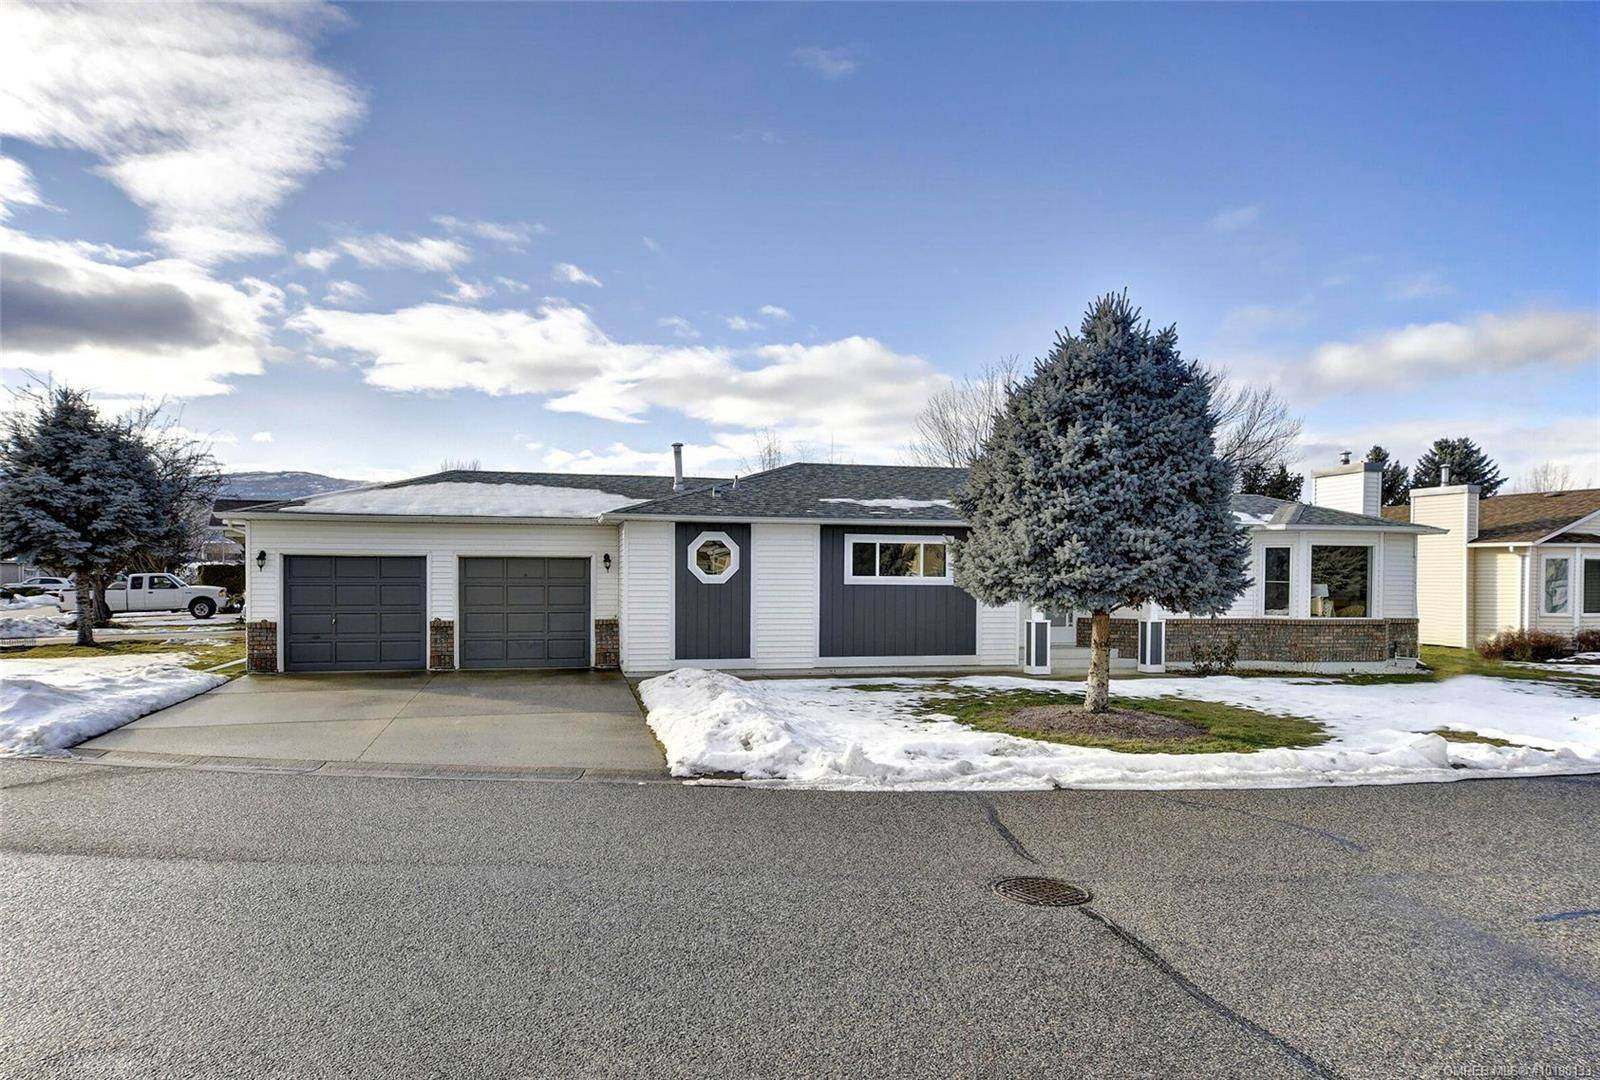 House for sale at 1255 Raymer Ave Unit 513 Kelowna British Columbia - MLS: 10198133